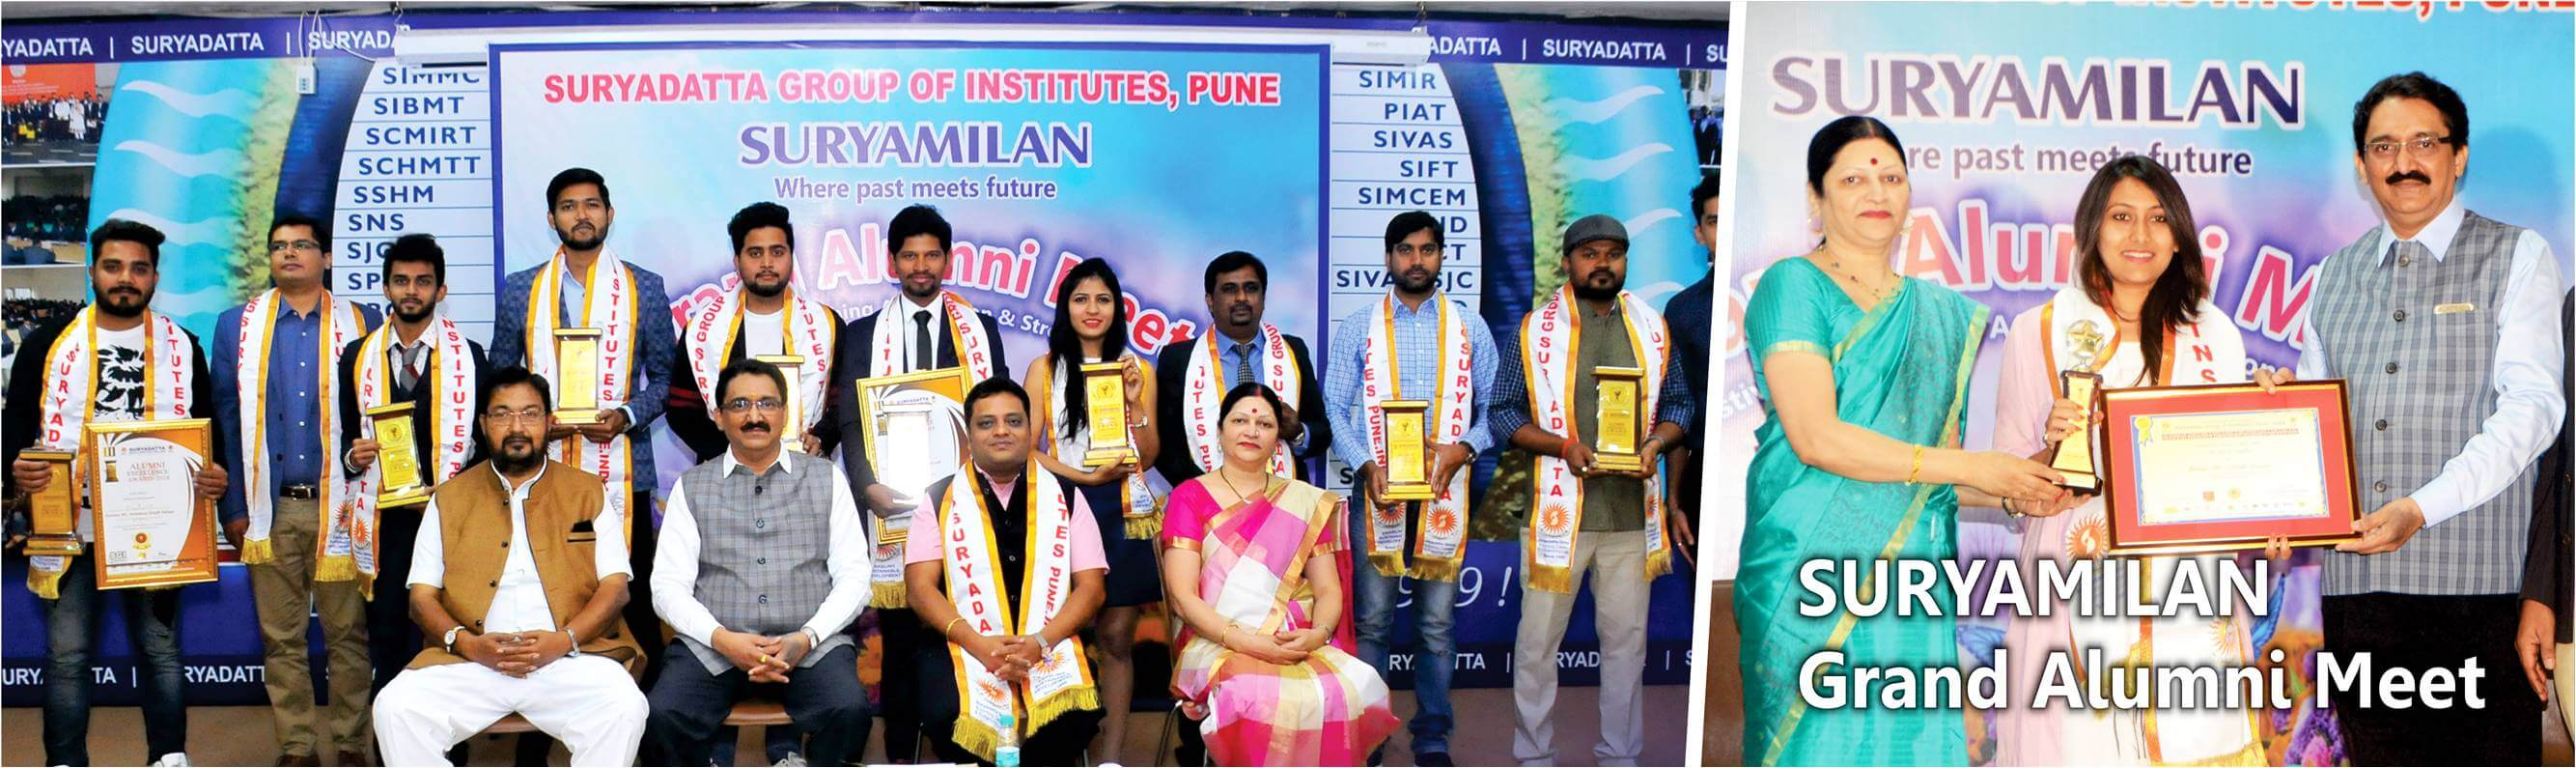 Suryadatta Group of Institutes National Awards